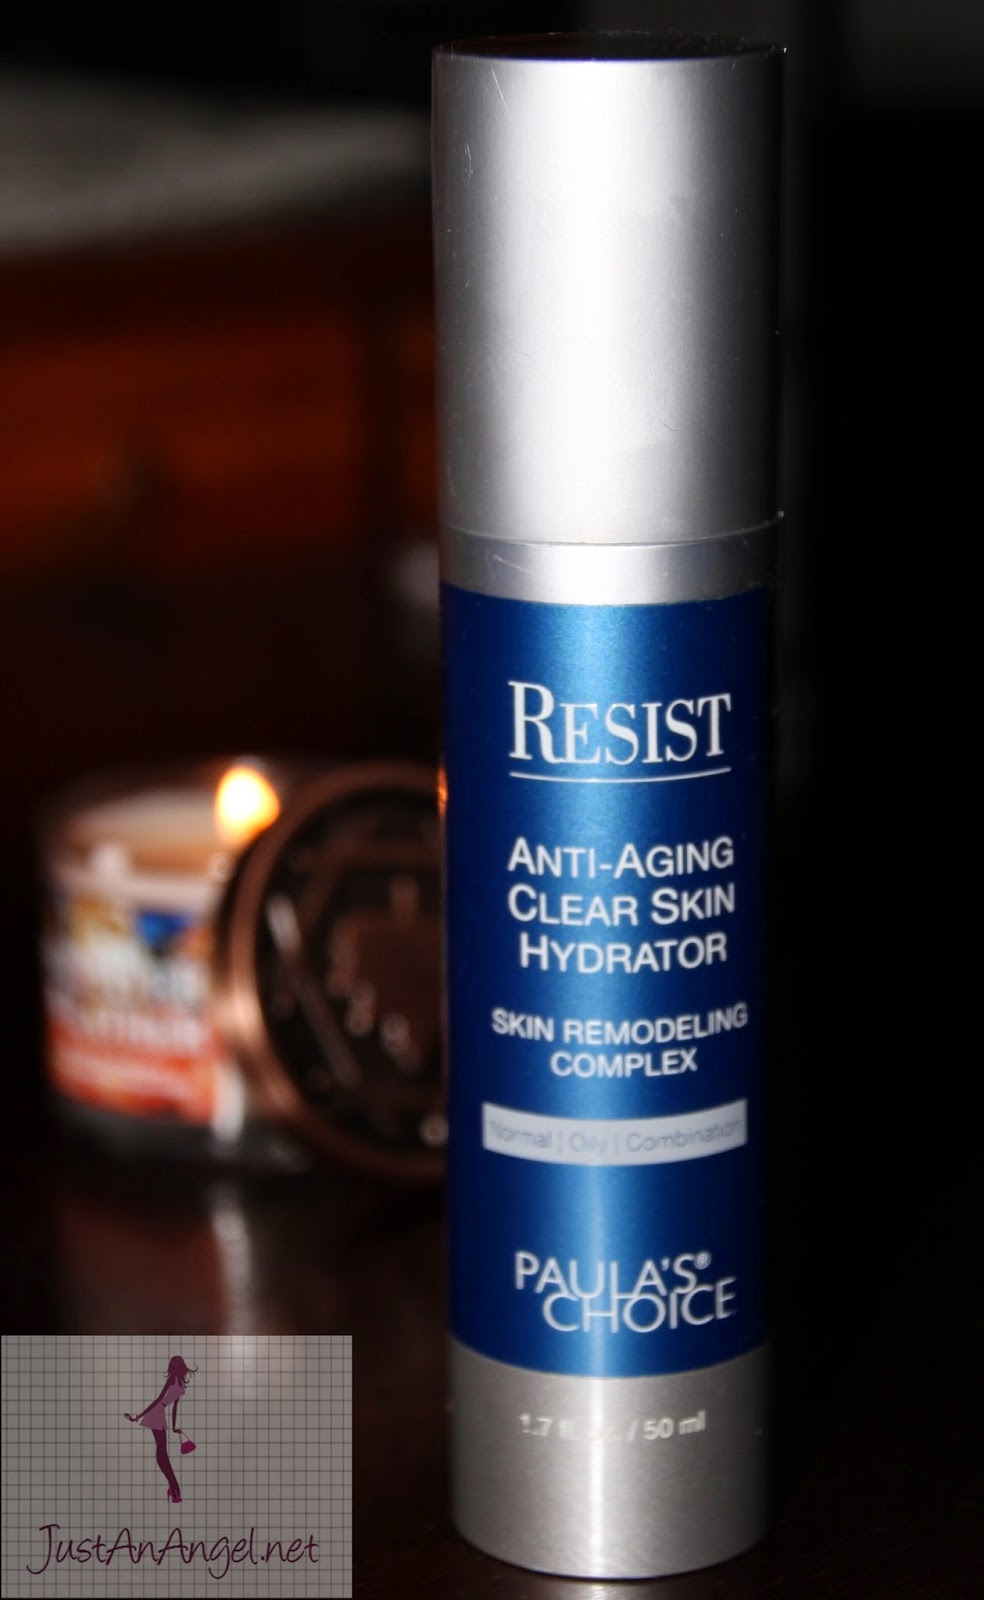 crema Paula's choice Resist Anti-aging Clear Skin Hydrator